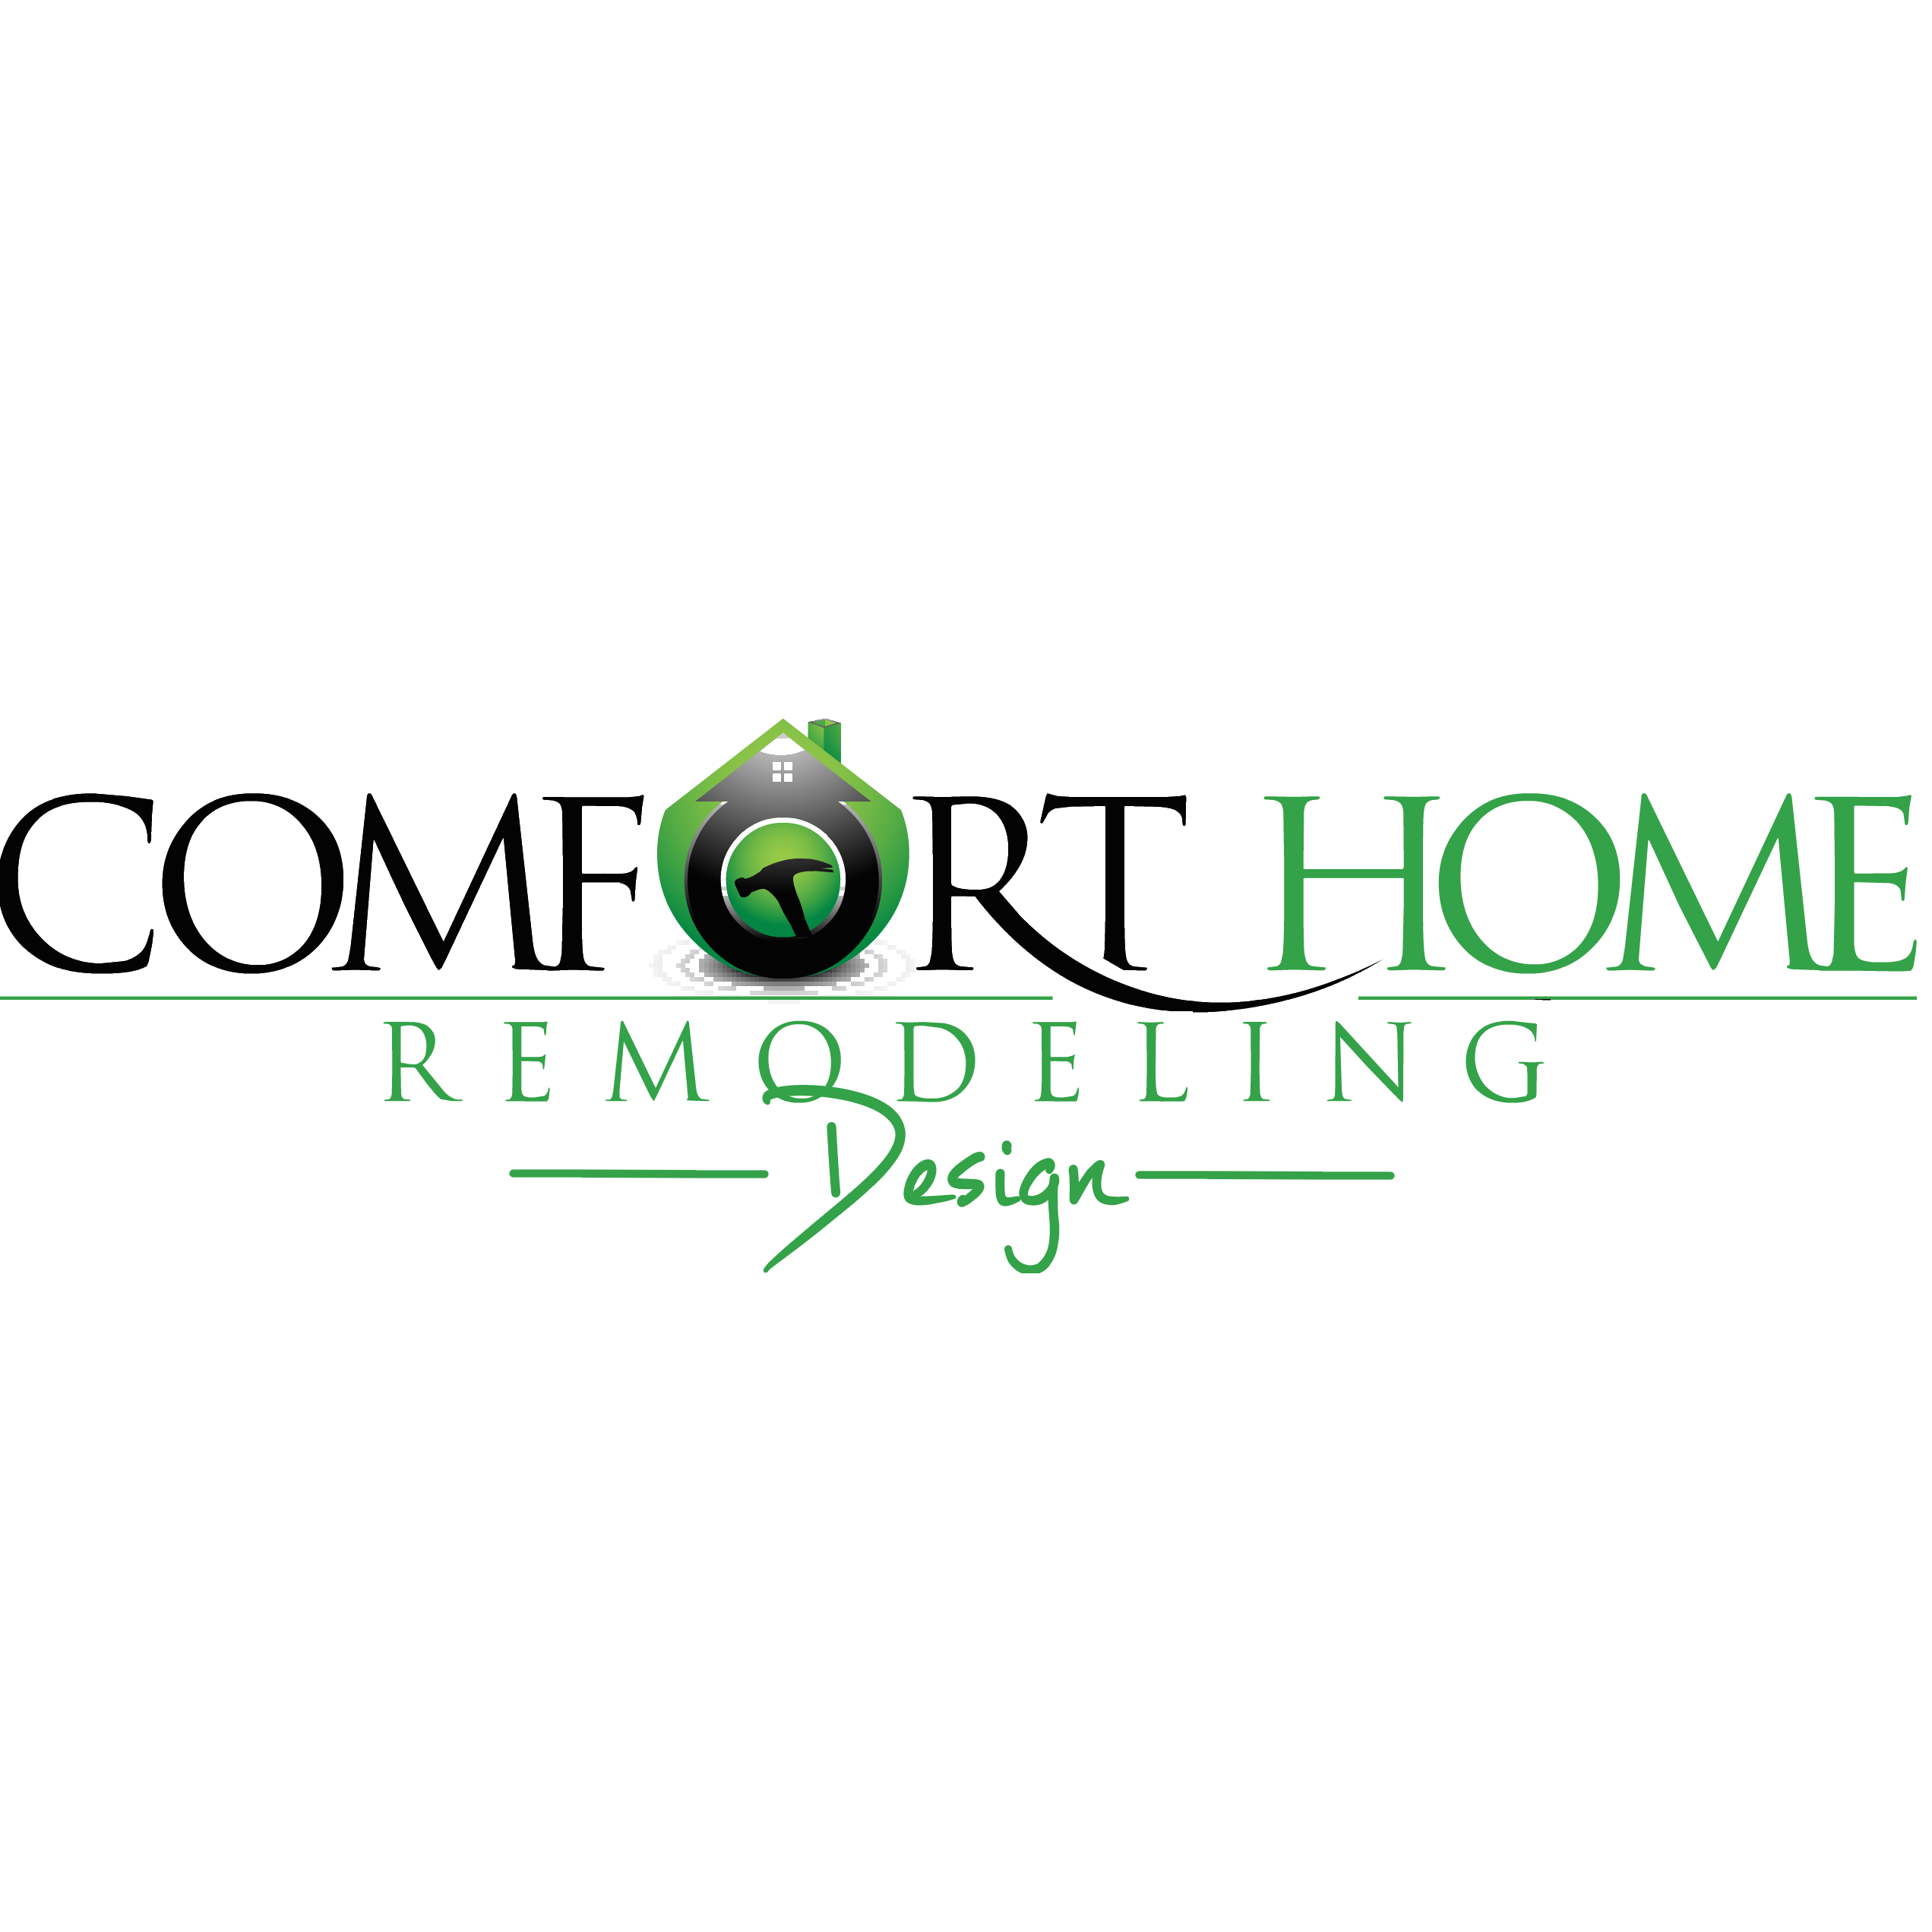 Comfort home remodeling design in elk grove village il 60007 Home design and comfort